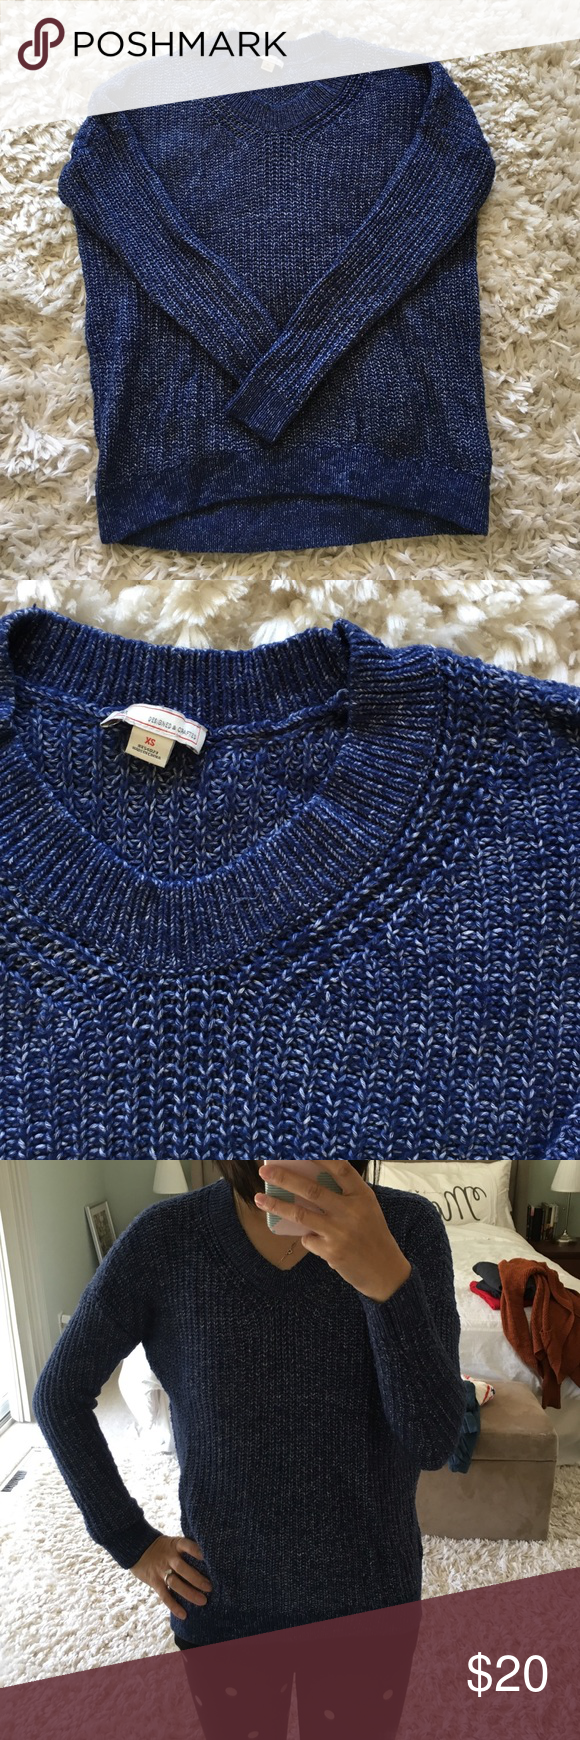 GAP Sweater EUC, only washed and worn once. GAP Knit Sweater in a blue and white speckled pattern. Perfect for Fall and Winter months. Women's XS. Super soft and cozy. 62% cotton, 38% acrylic. GAP Sweaters V-Necks